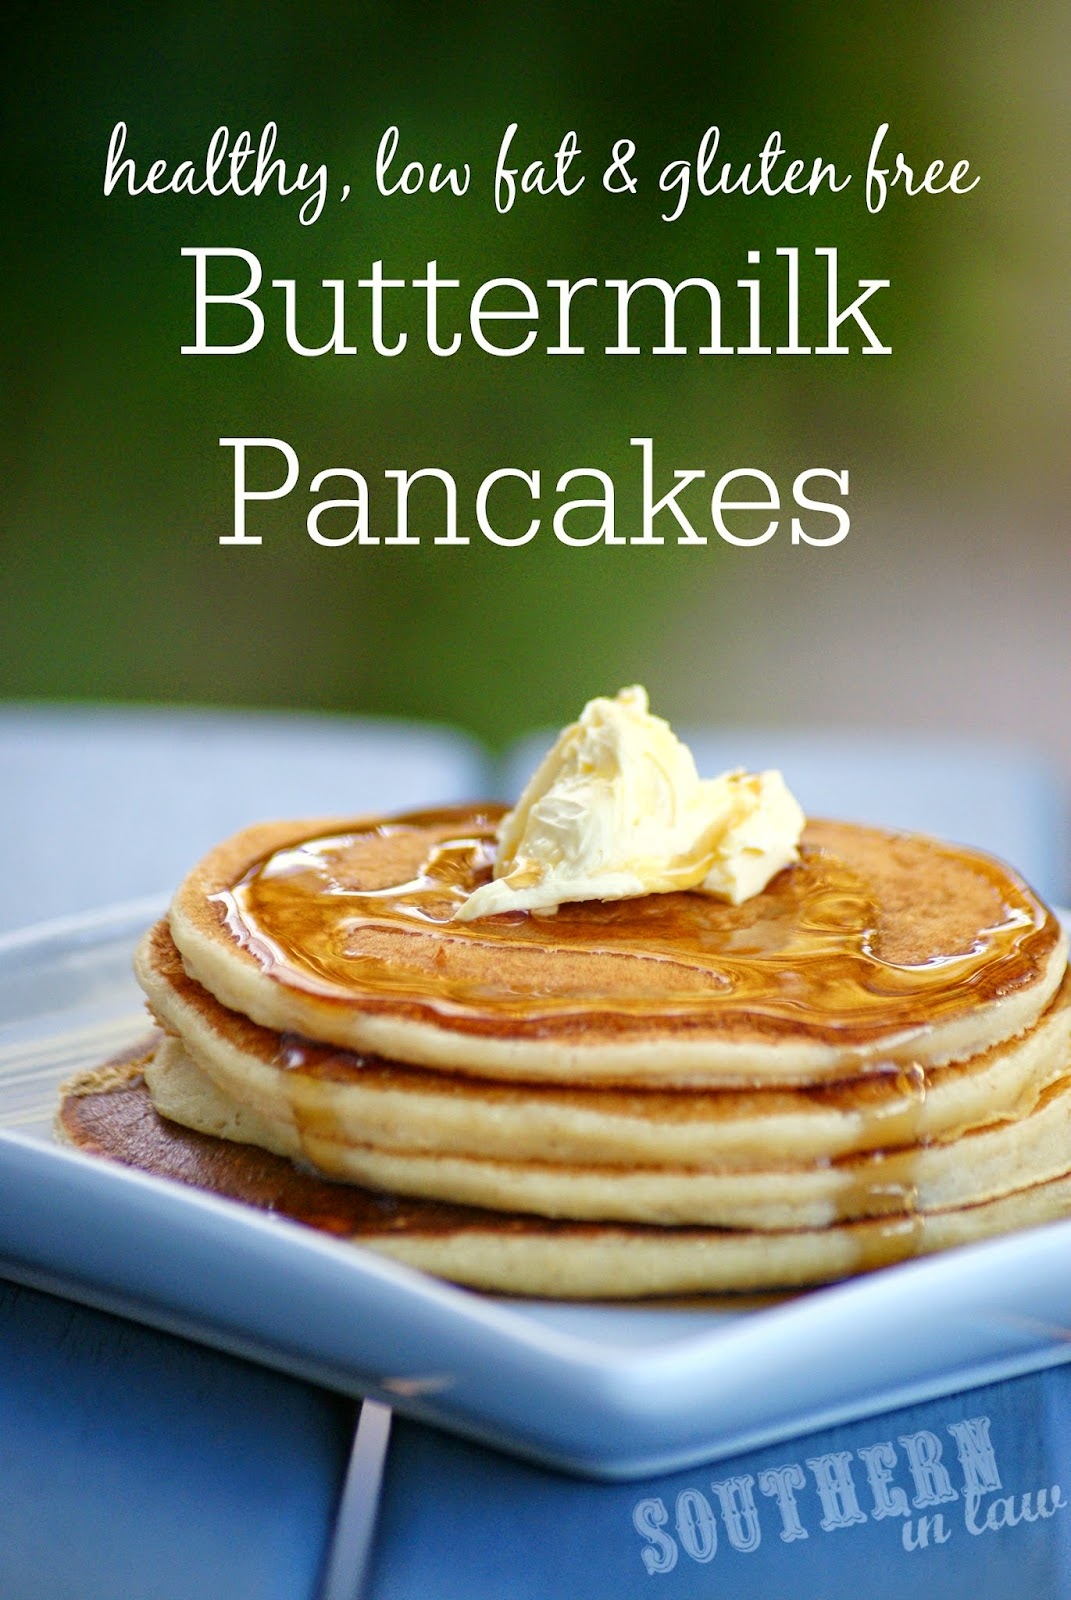 Healthy Buttermilk Pancakes Recipe - low fat, gluten free, healthy, refined sugar free, low sugar, clean eating friendly